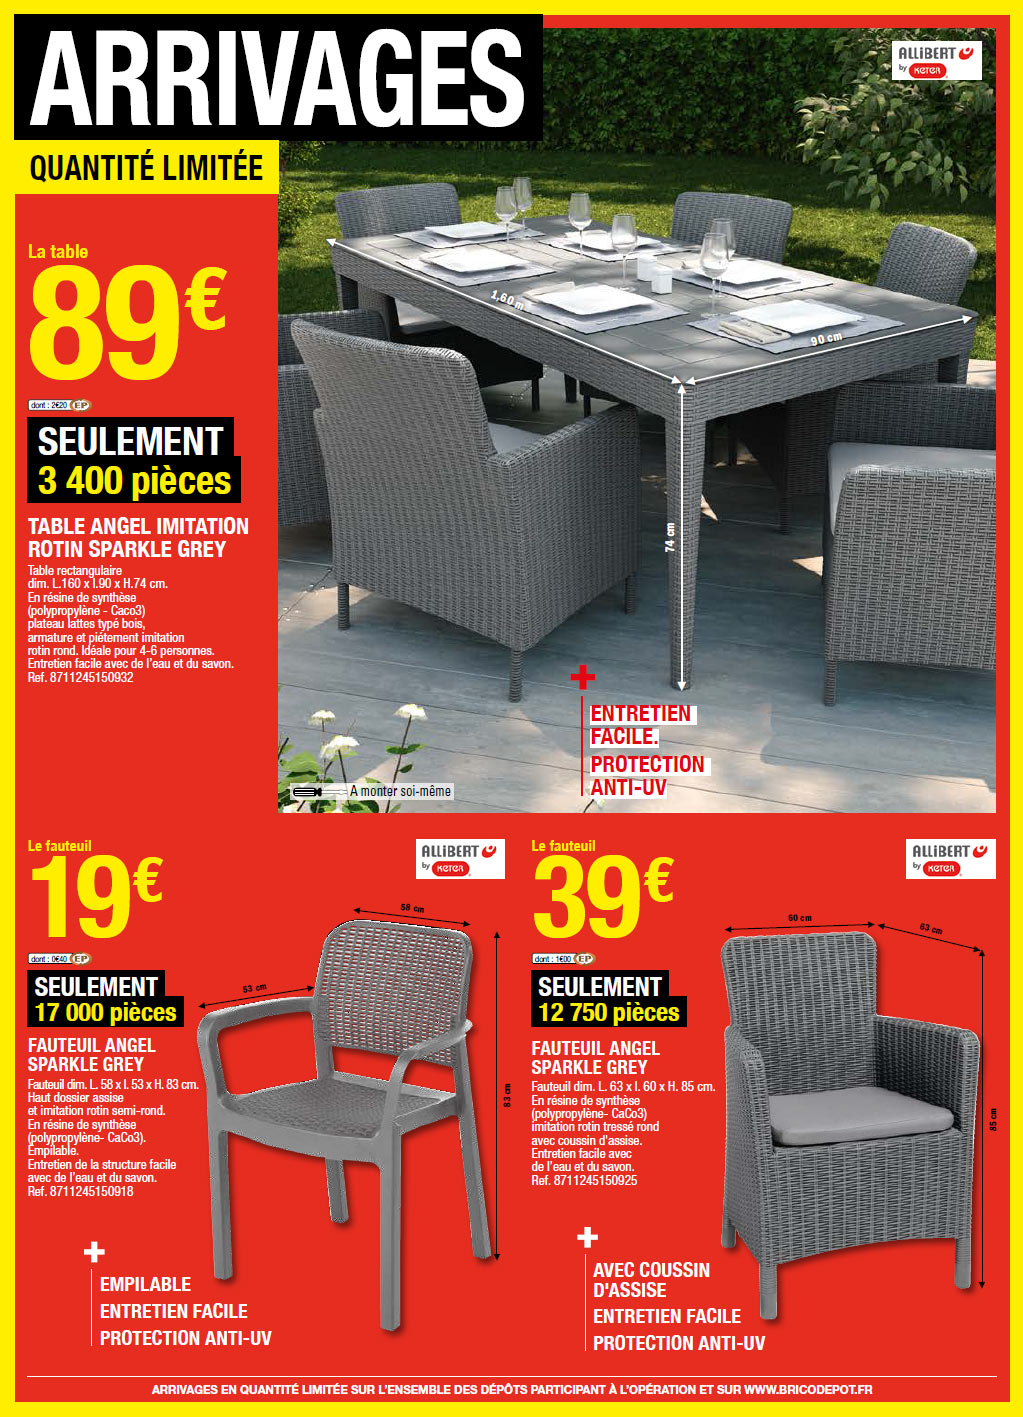 table de jardin brico depot arrivage